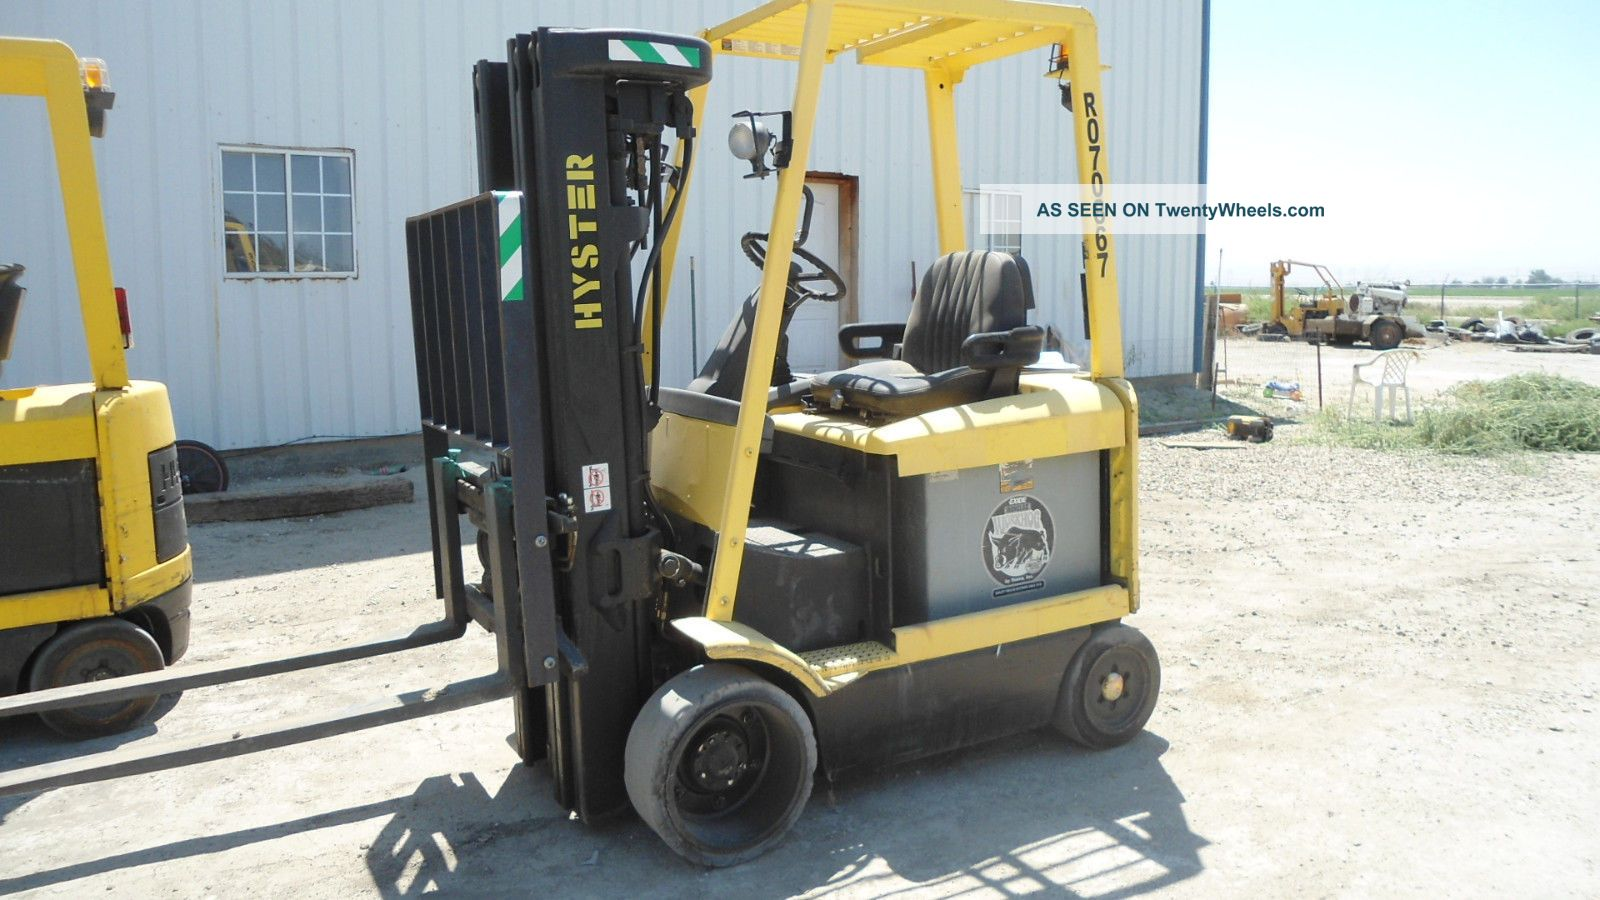 Nissan Forklift 50 Manuals Electric Car Conversion Project Forkenswift Page 69 Fuel Economy Array Manual Pdf Rh Accountabilitycounseling